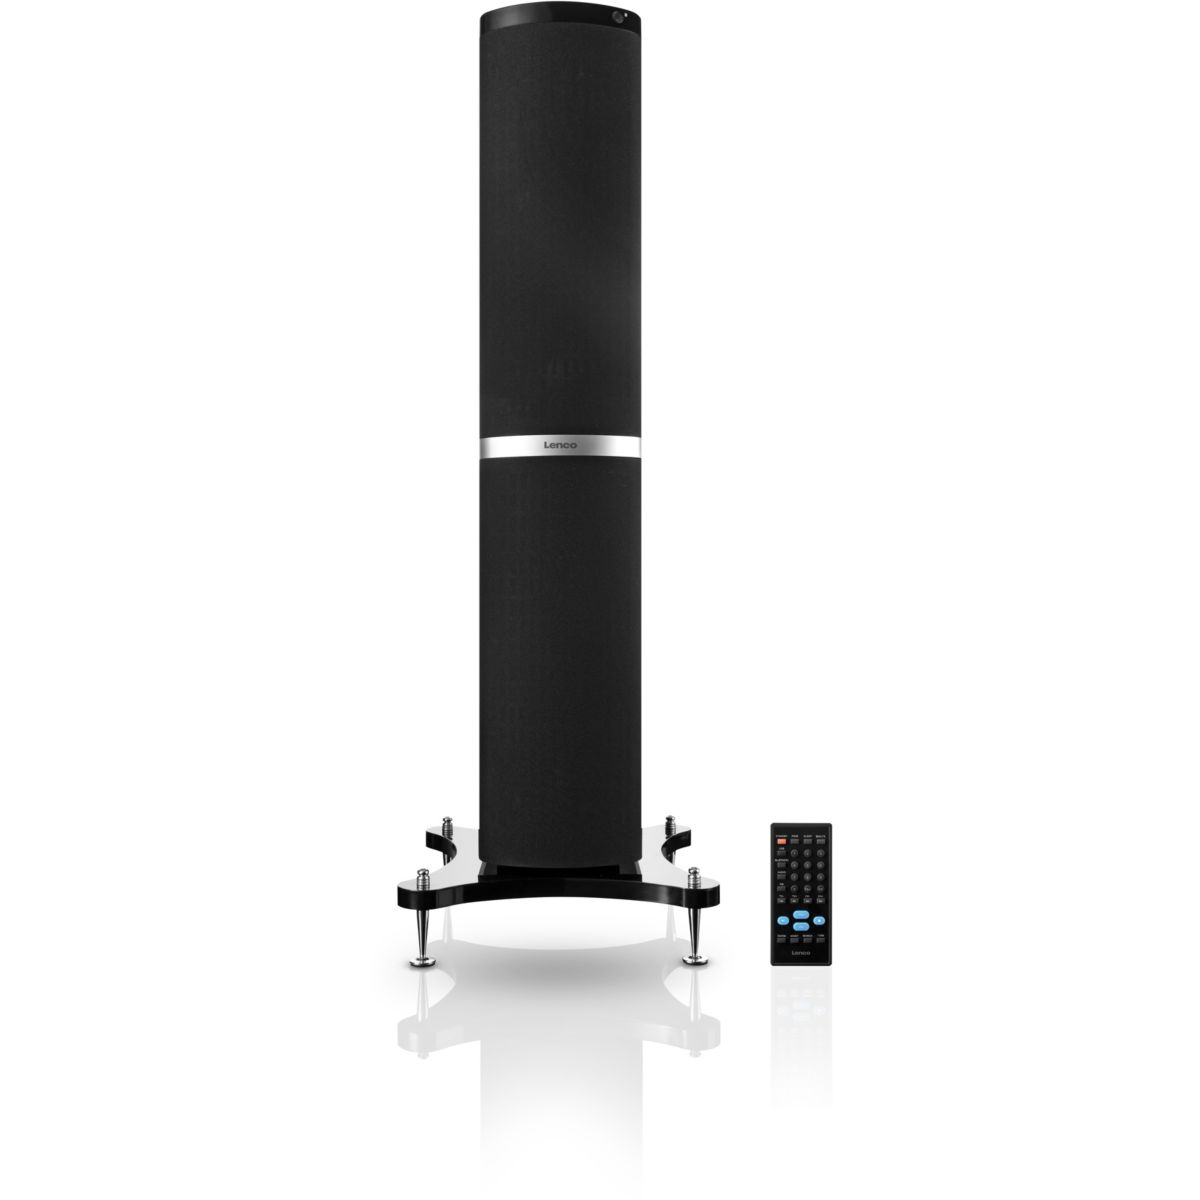 lenco btt 1 tour audio bluetooth avec radio fm et usb comparer avec. Black Bedroom Furniture Sets. Home Design Ideas